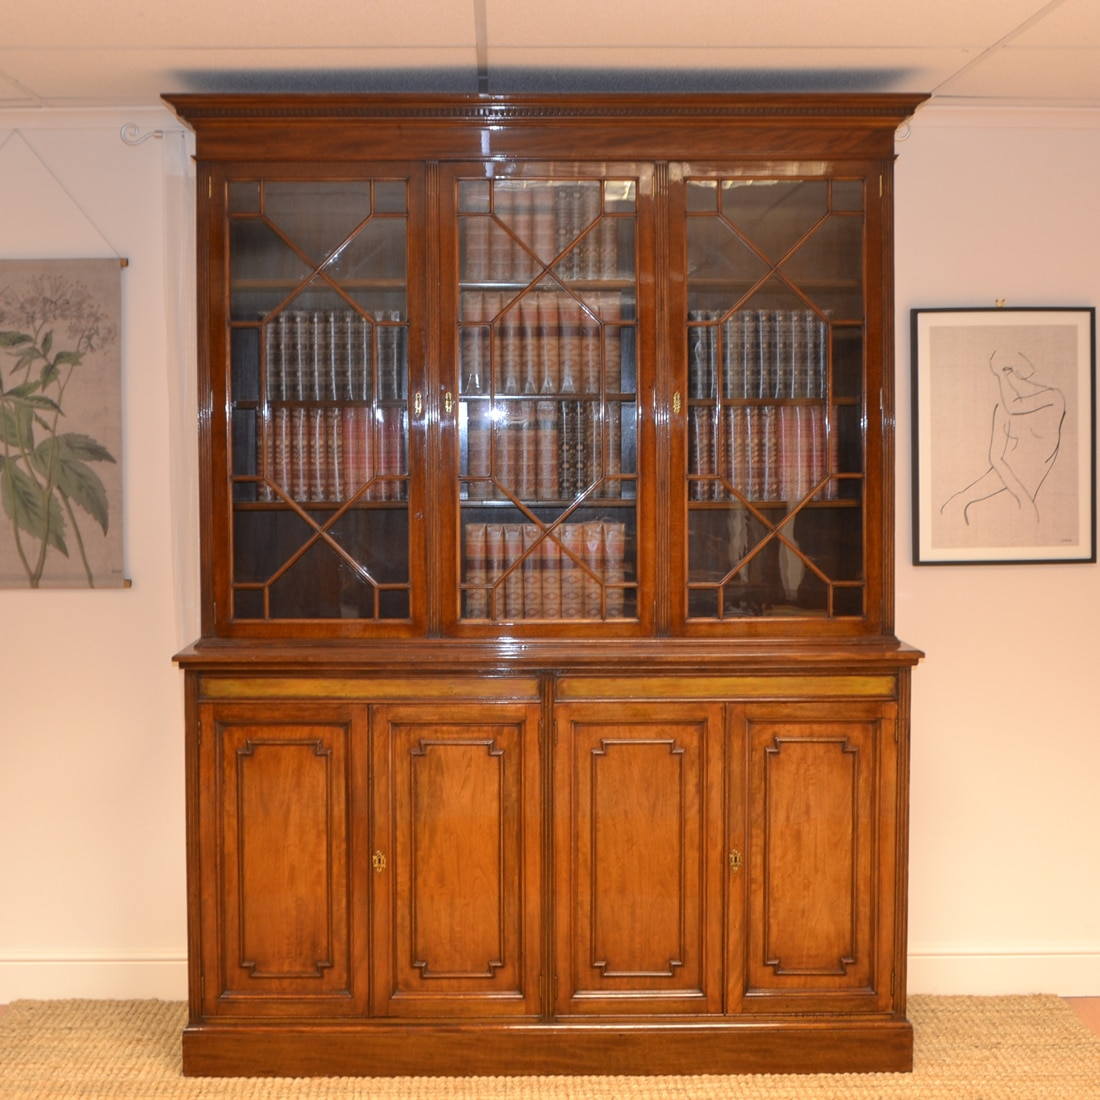 S & H Jewell Large Victorian Mahogany Antique Library Bookcase